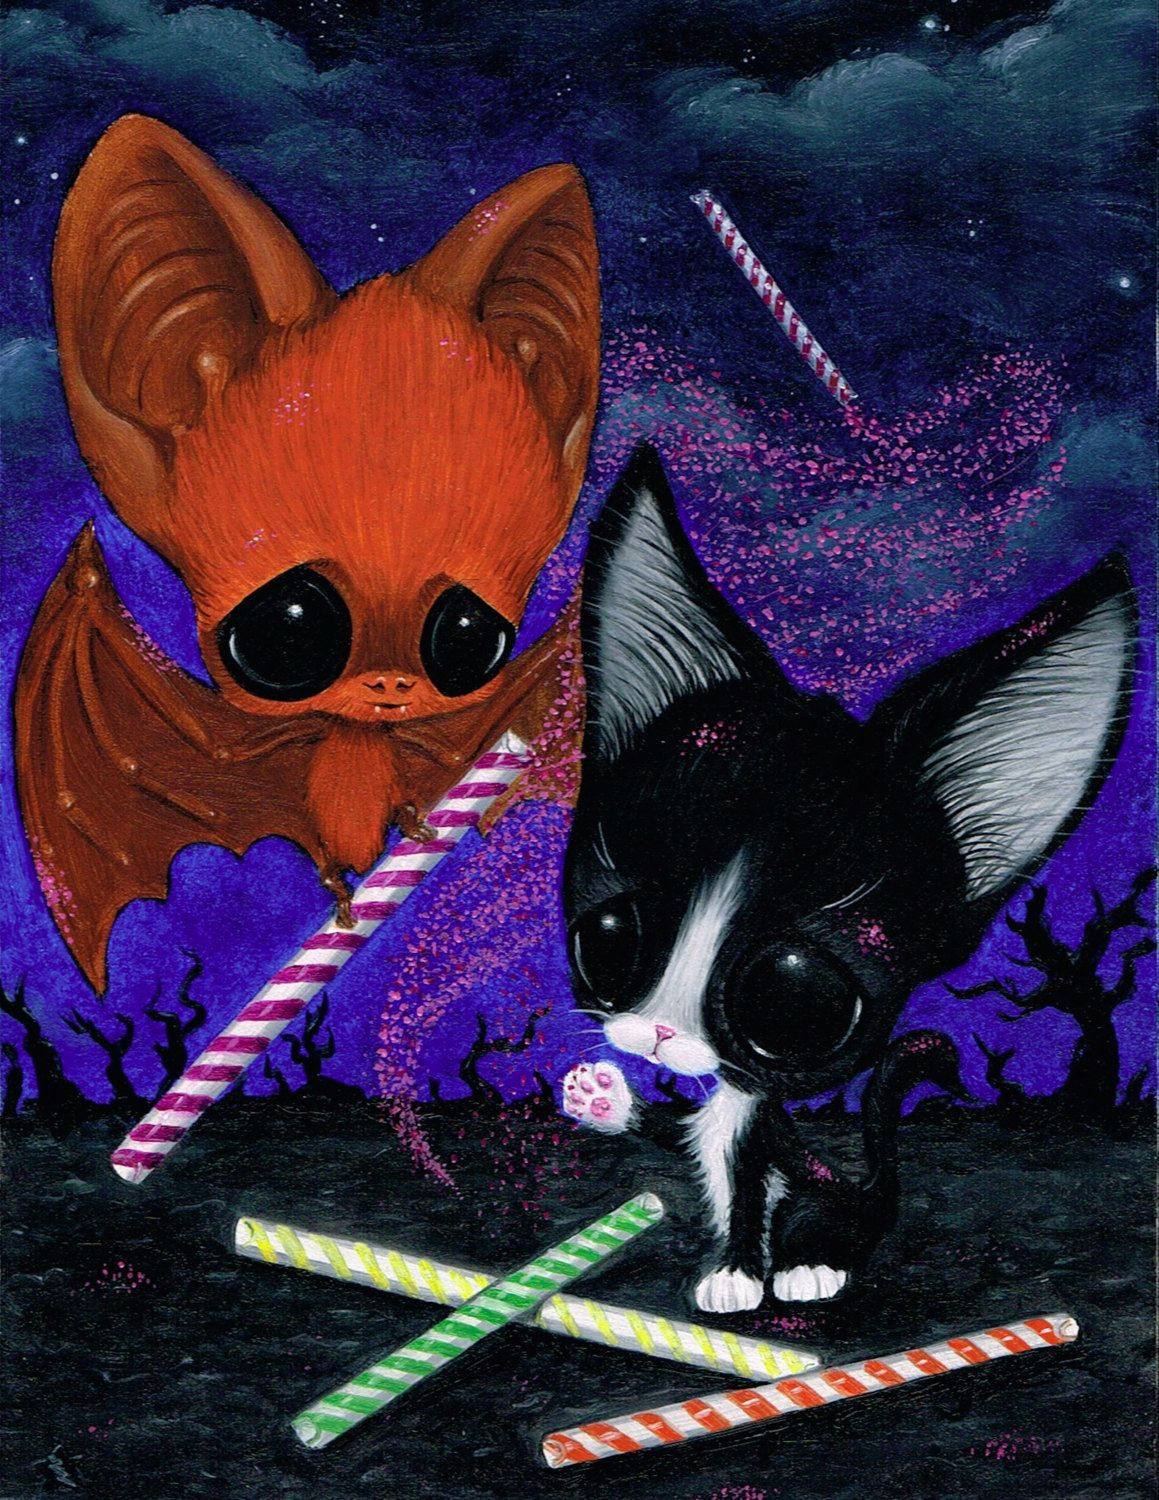 Sugar Fueled Pity Kitty Cat Kitten Bat Sweets Desserts Pop Etsy Big Eyes Art Big Eyes Art